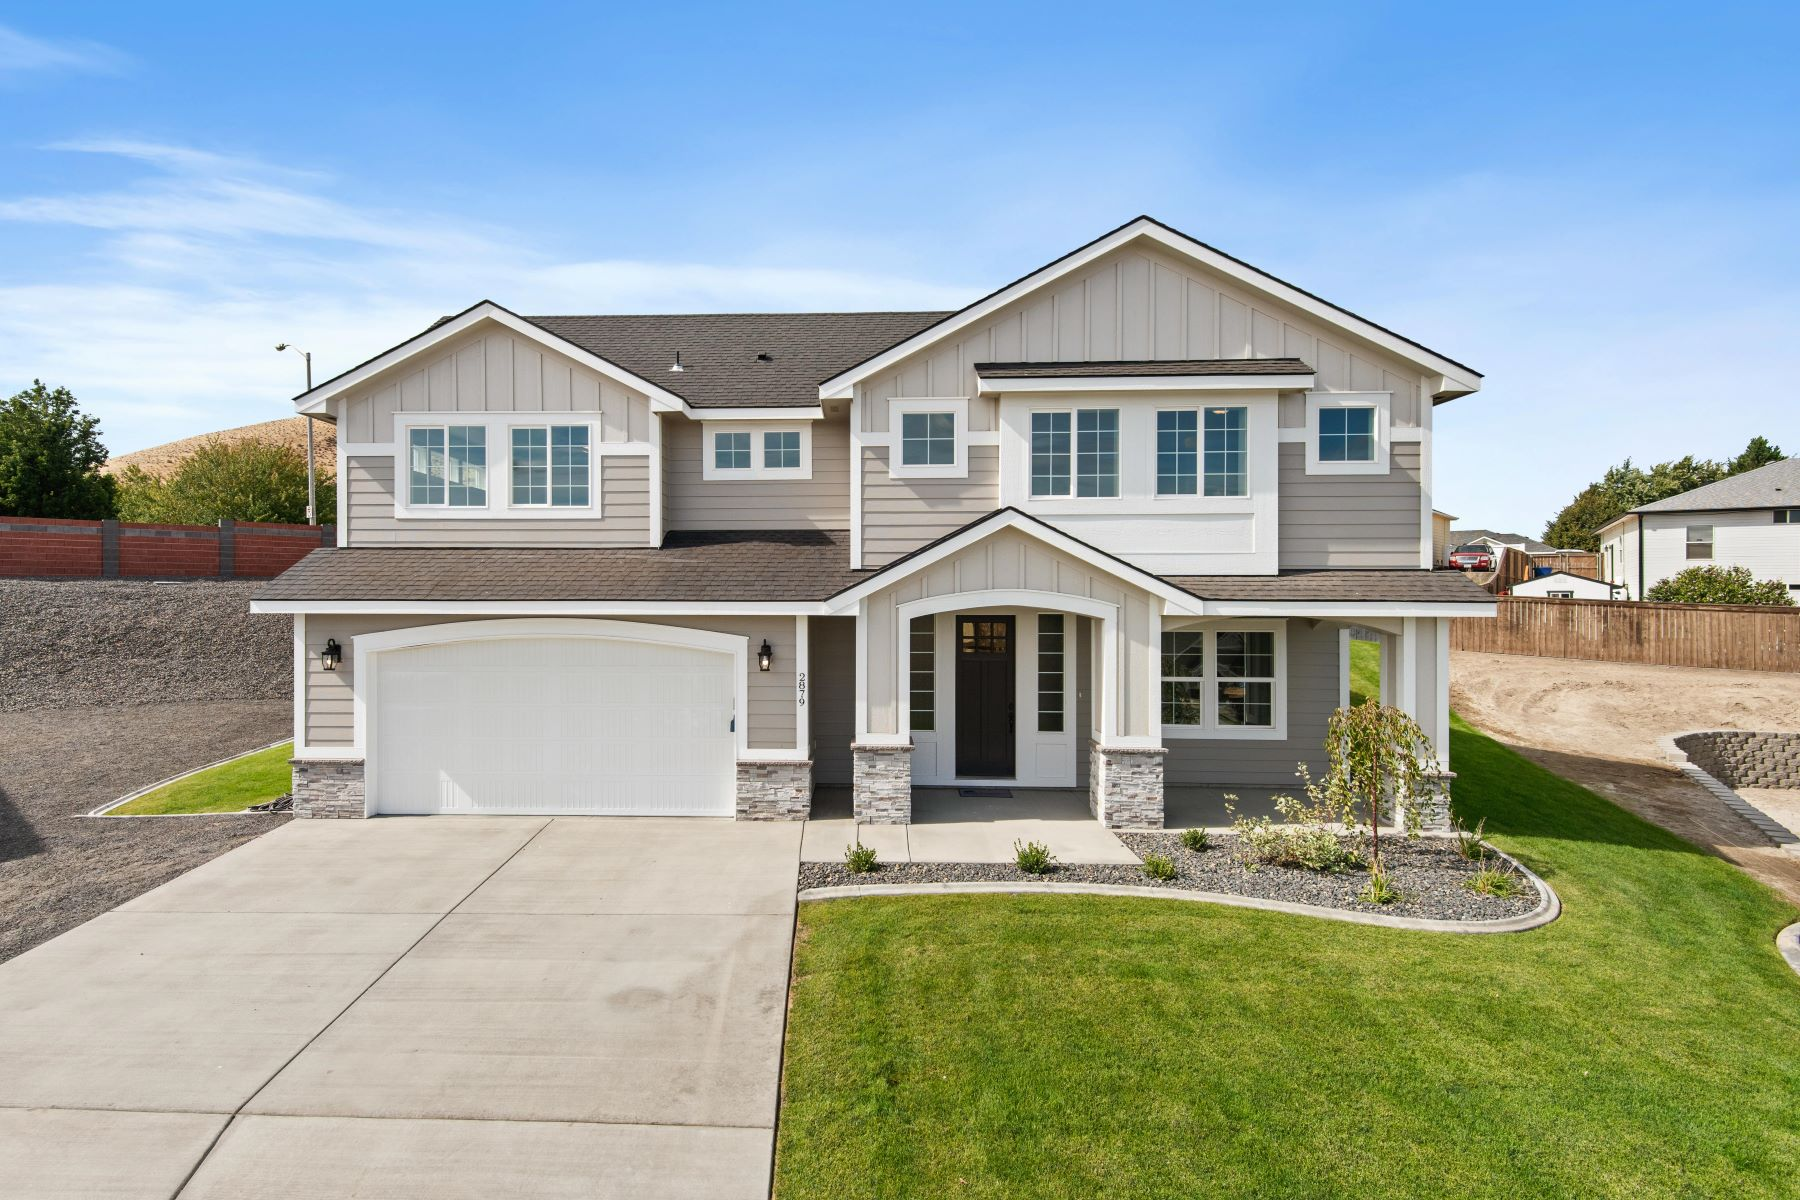 Single Family Homes for Sale at The Madison by Riverwood 2879 Mackenzie Court Richland, Washington 99352 United States